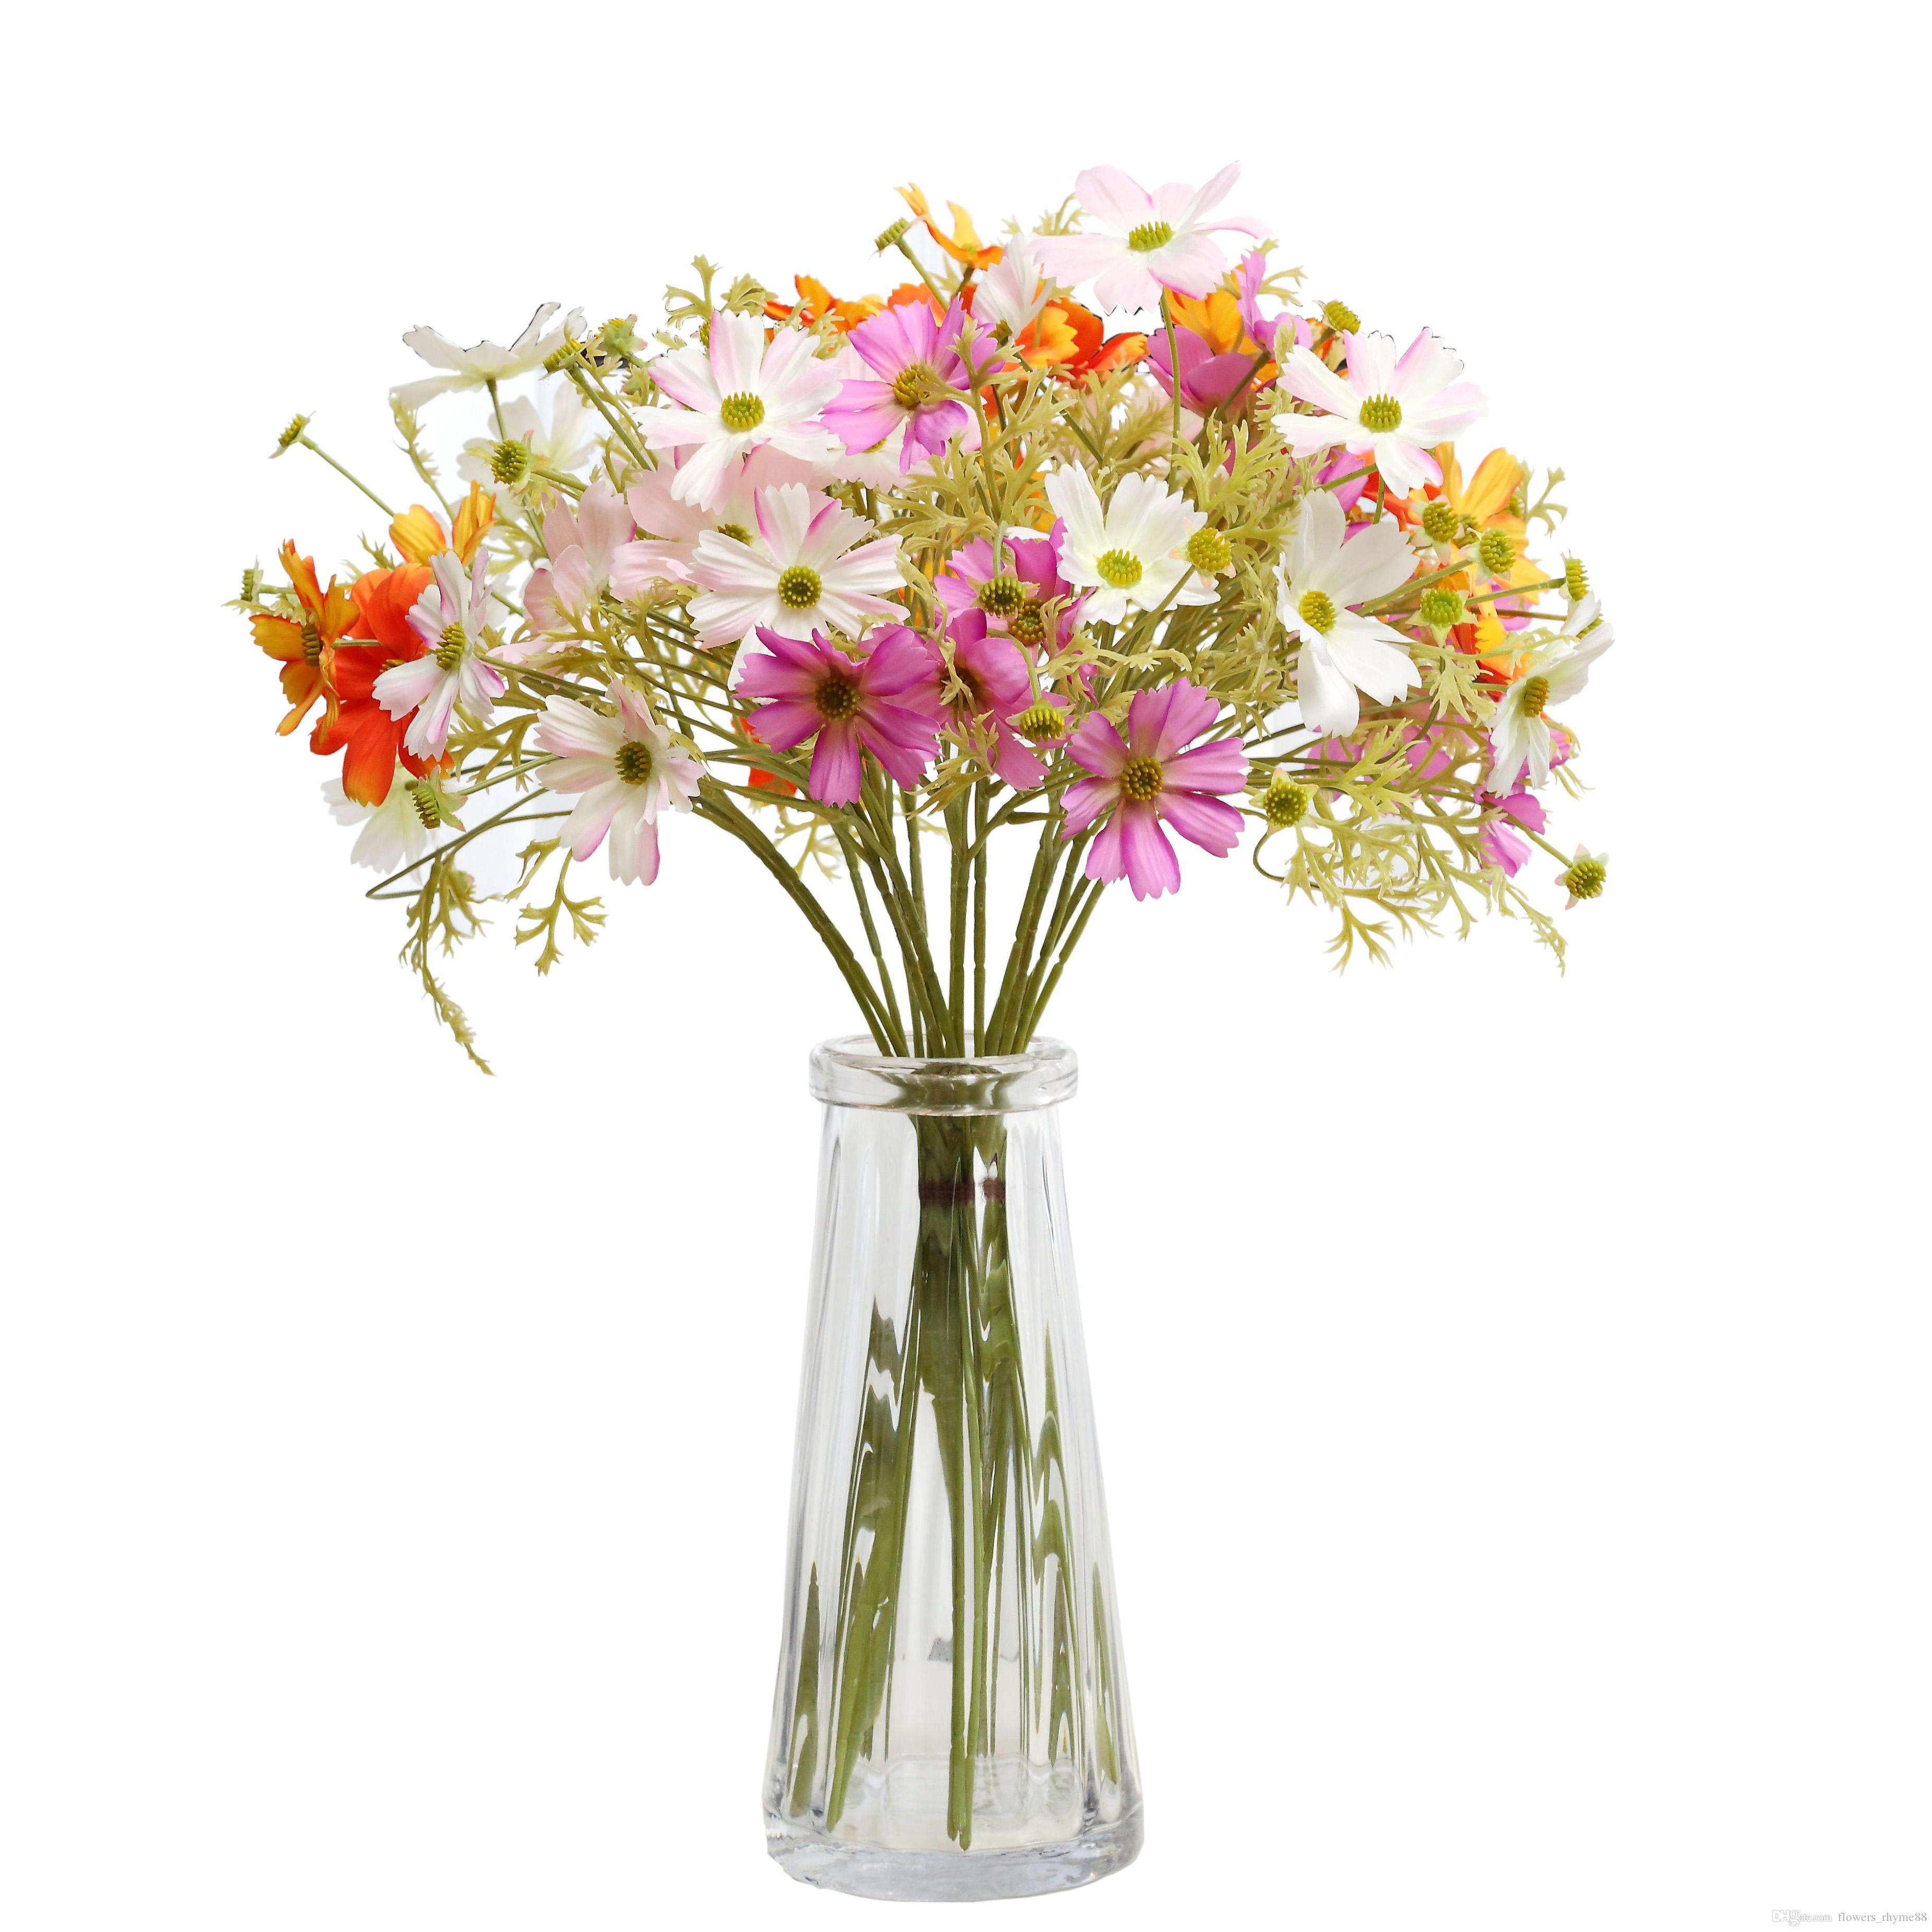 Liviing room decoration coreopsis daisy artificial flowers fake liviing room decoration coreopsis daisy artificial flowers fake flower plant home wedding party decor anemone silk flower table centerpieces artificial mightylinksfo